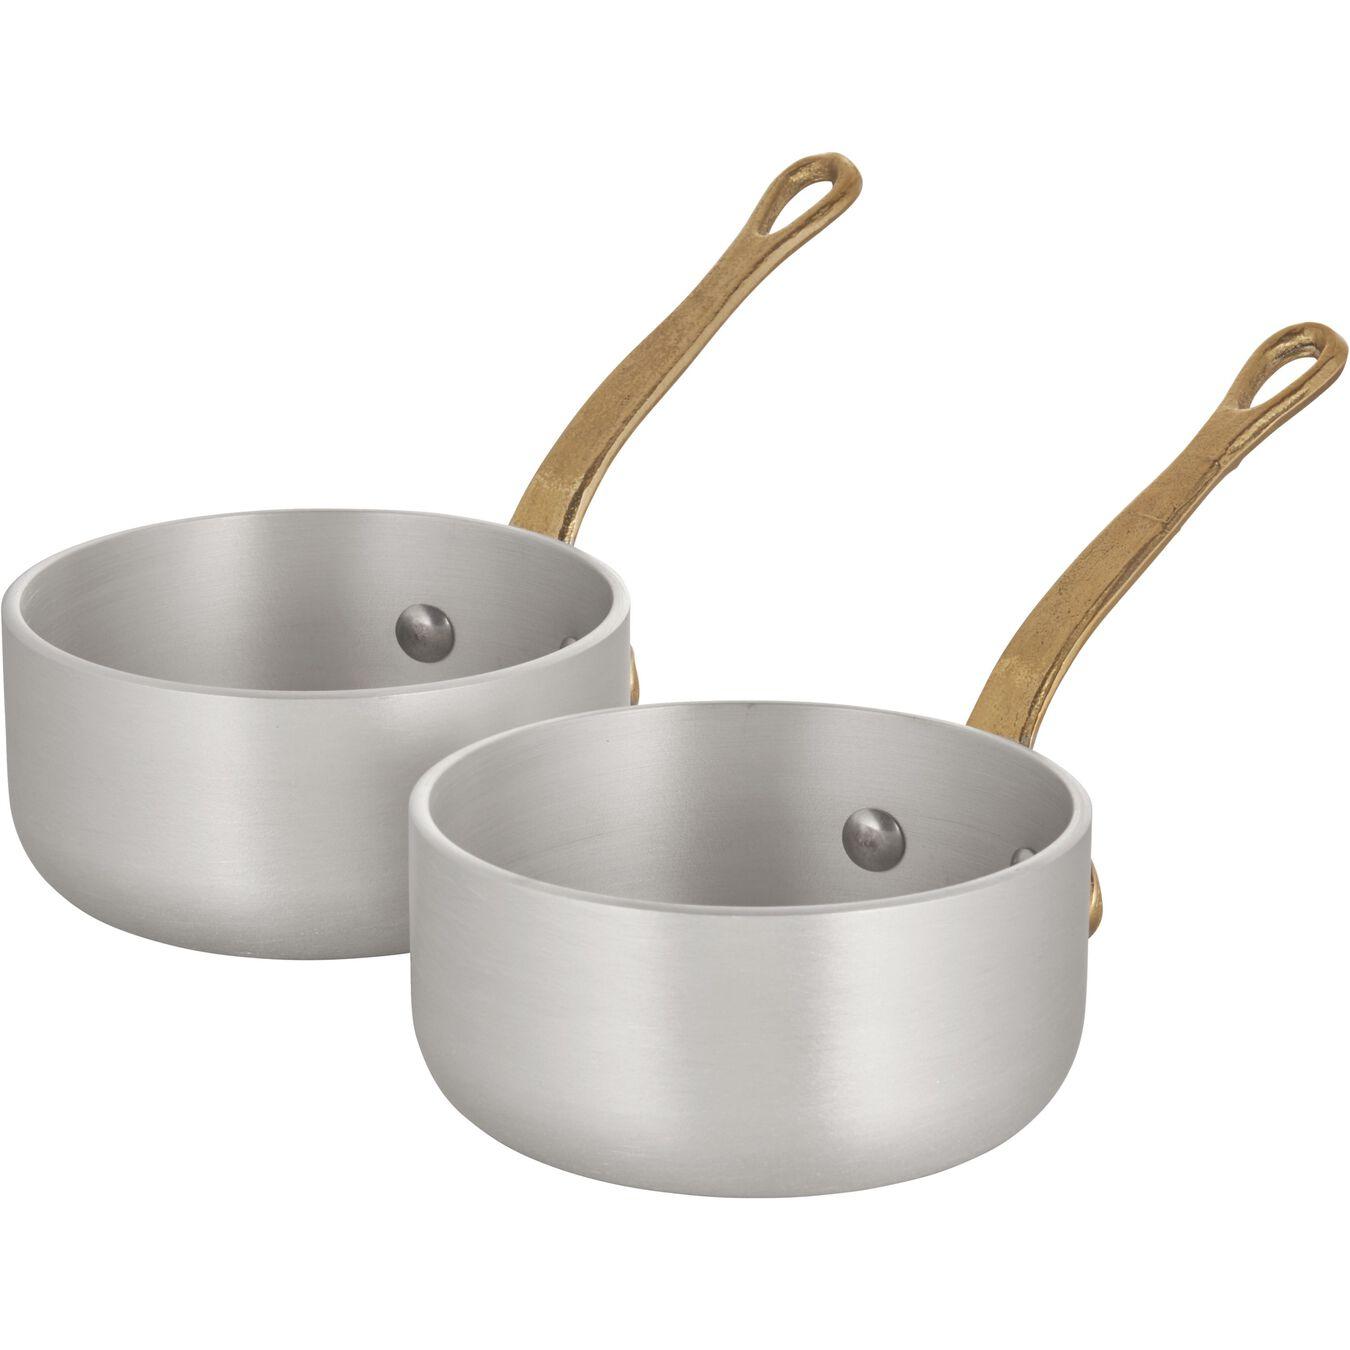 2-pc Mini Saucepan Set,,large 1